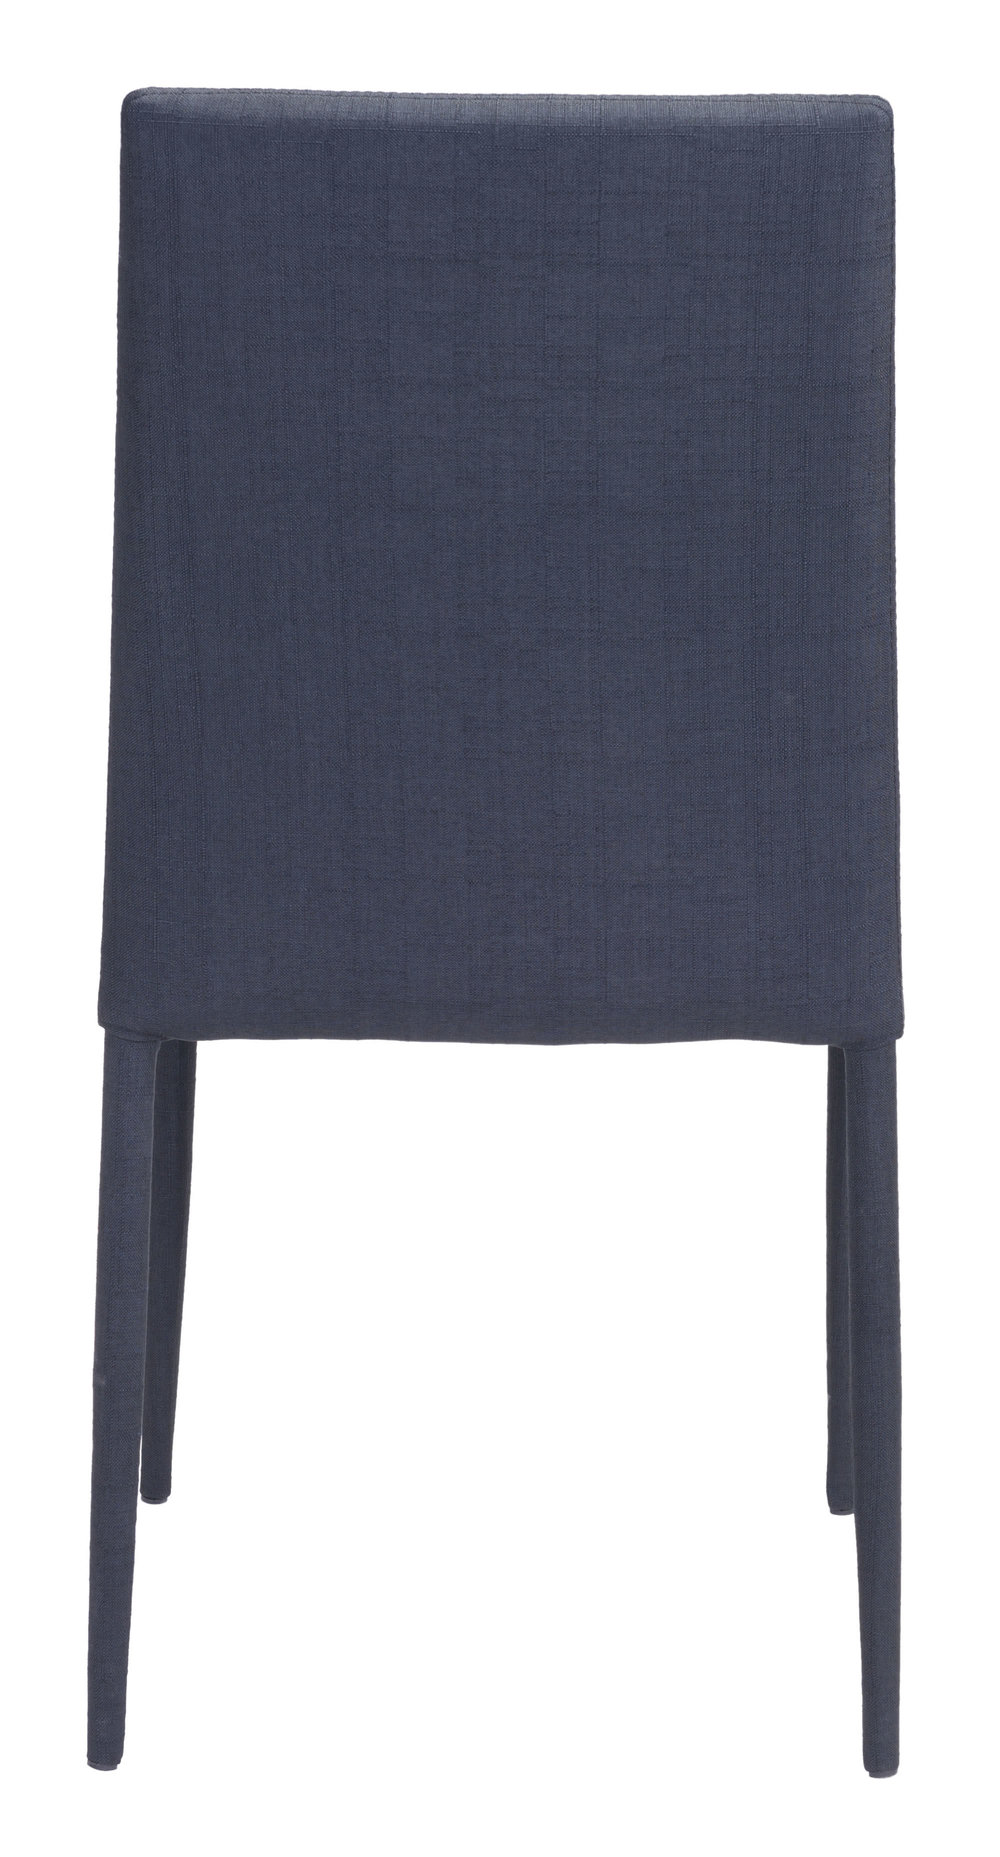 Zuo Modern Contemporary - Confidence Dining Chair - Set of 4 - Black